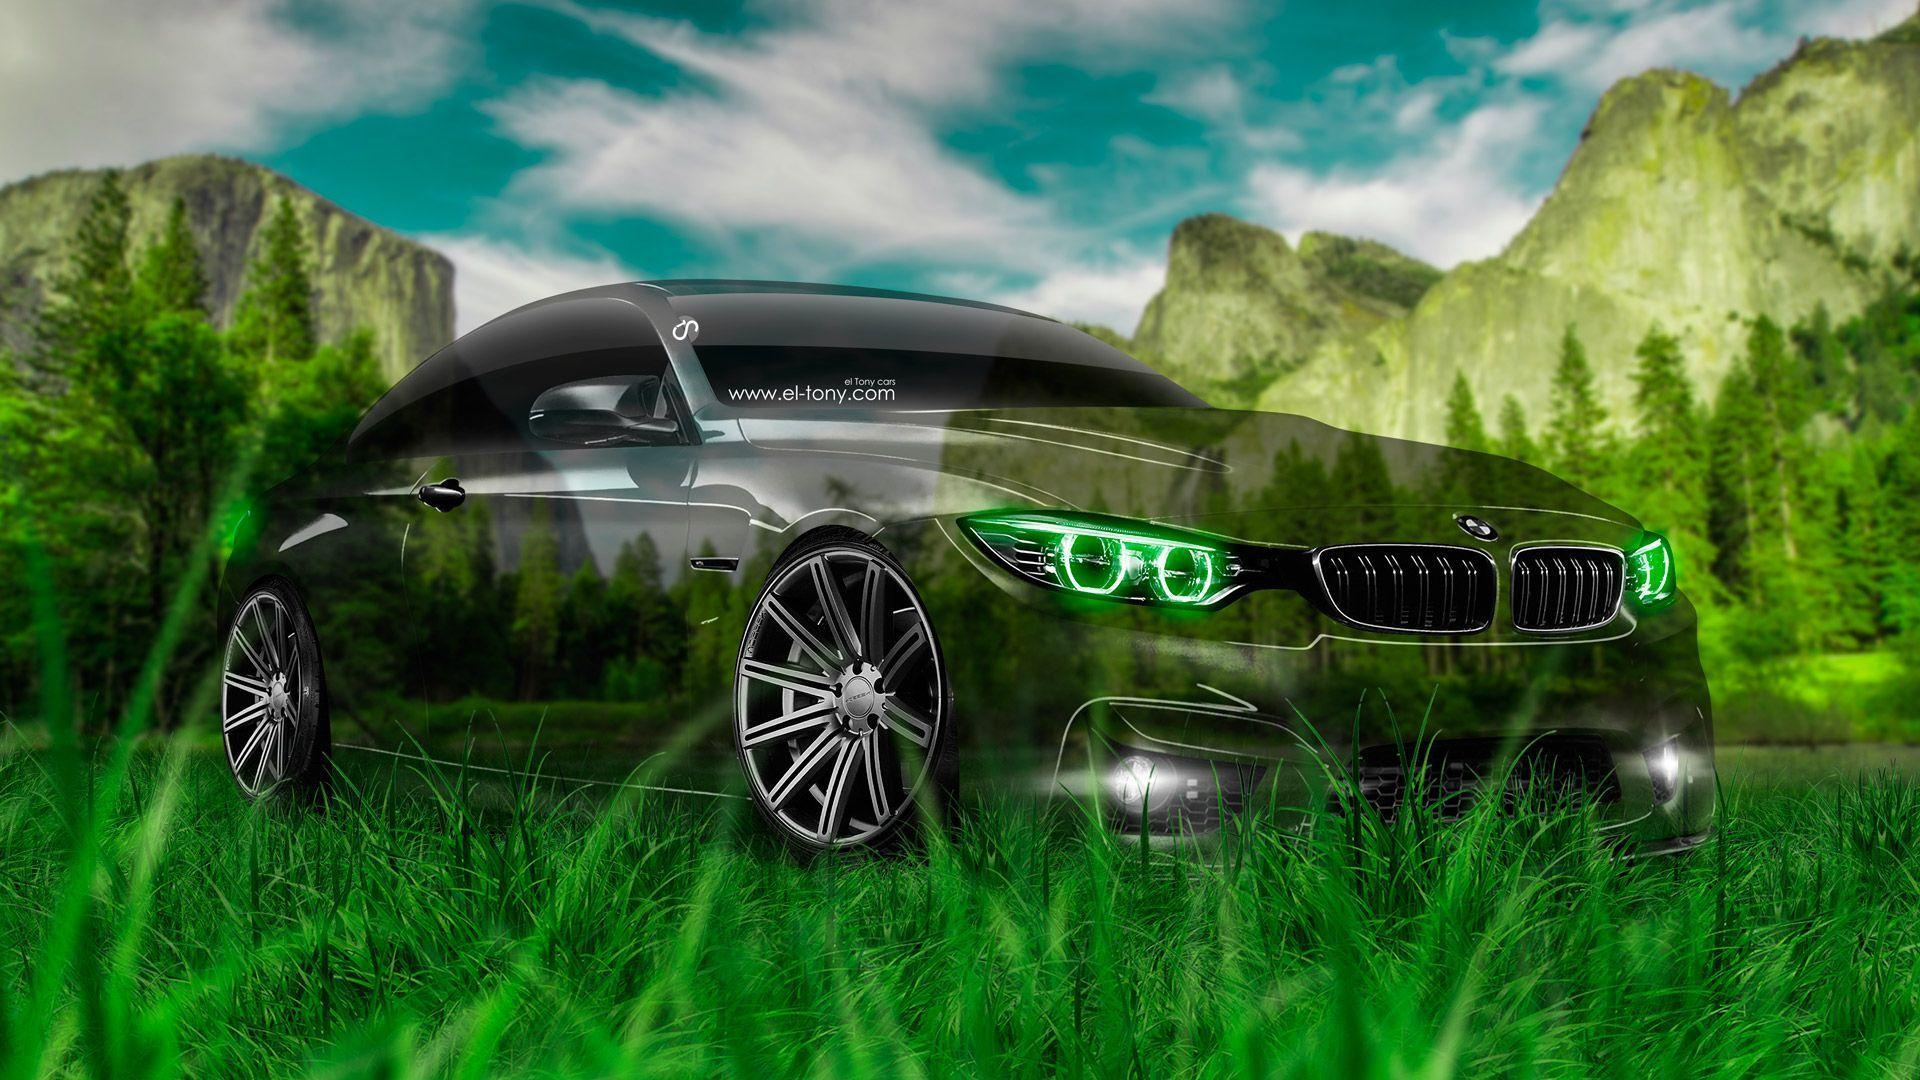 Car Background Editing Photos Hd Picture Idokeren